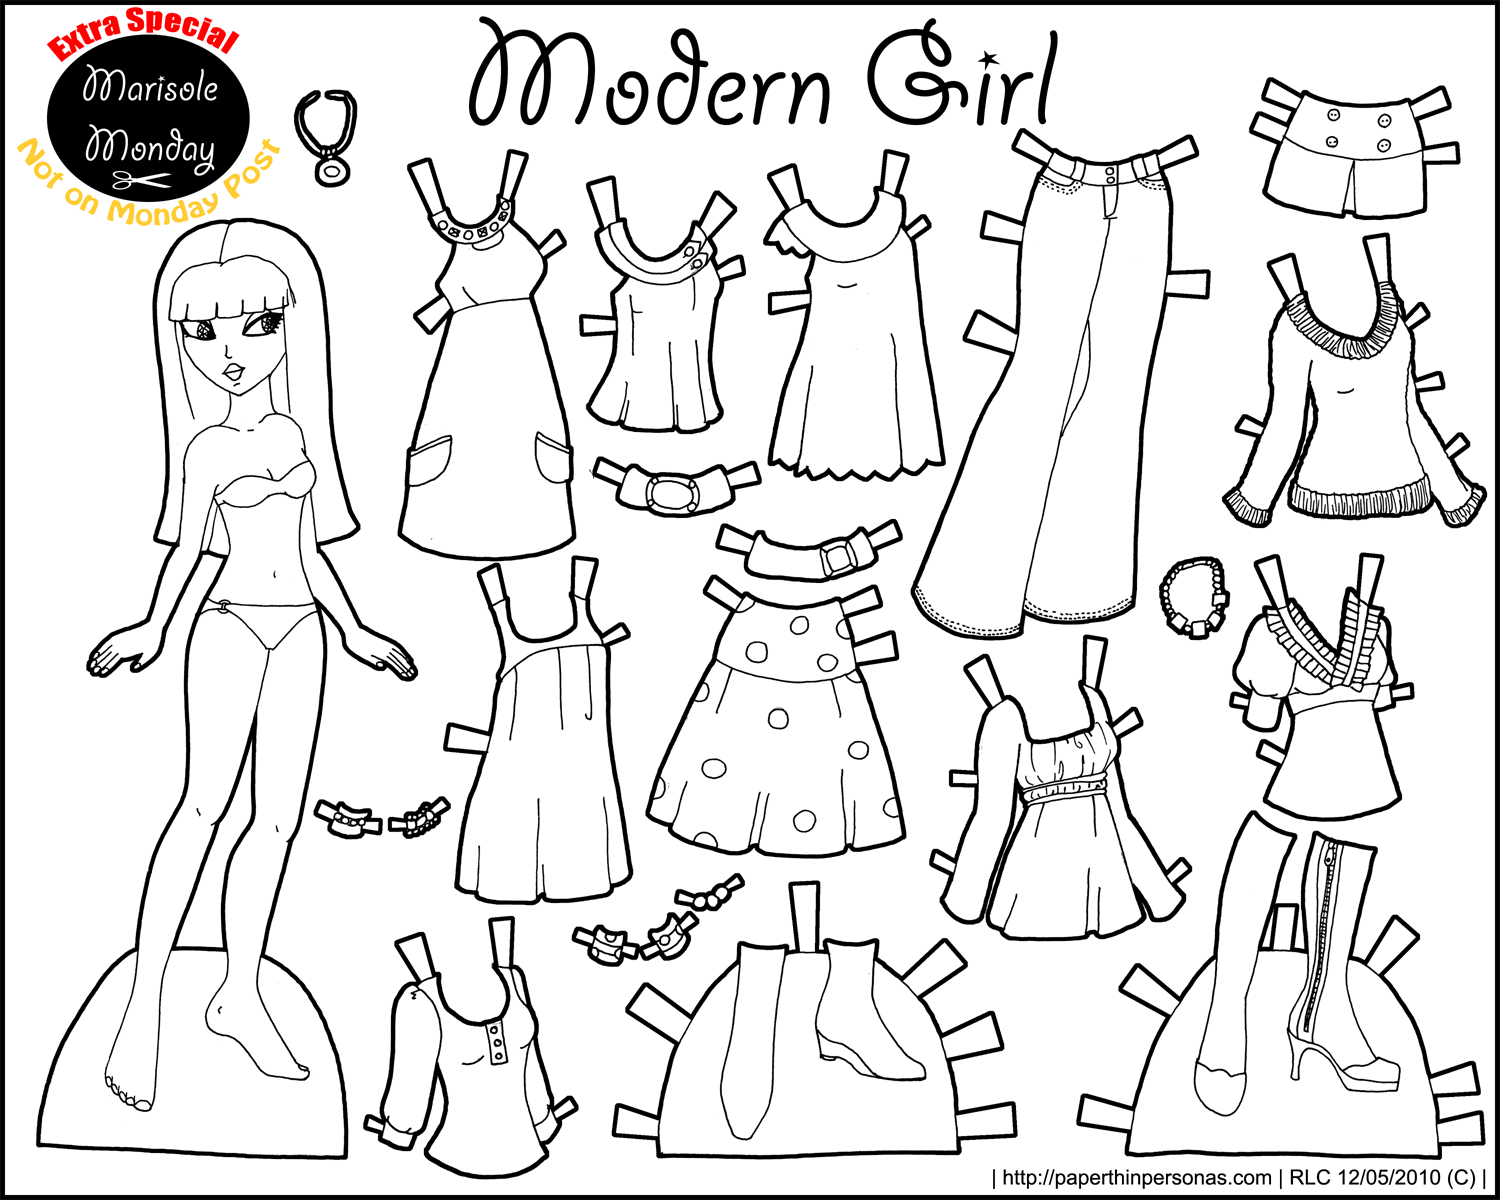 paper doll template with clothes kid clipart body dressed in a dress 20 free cliparts paper doll template clothes with